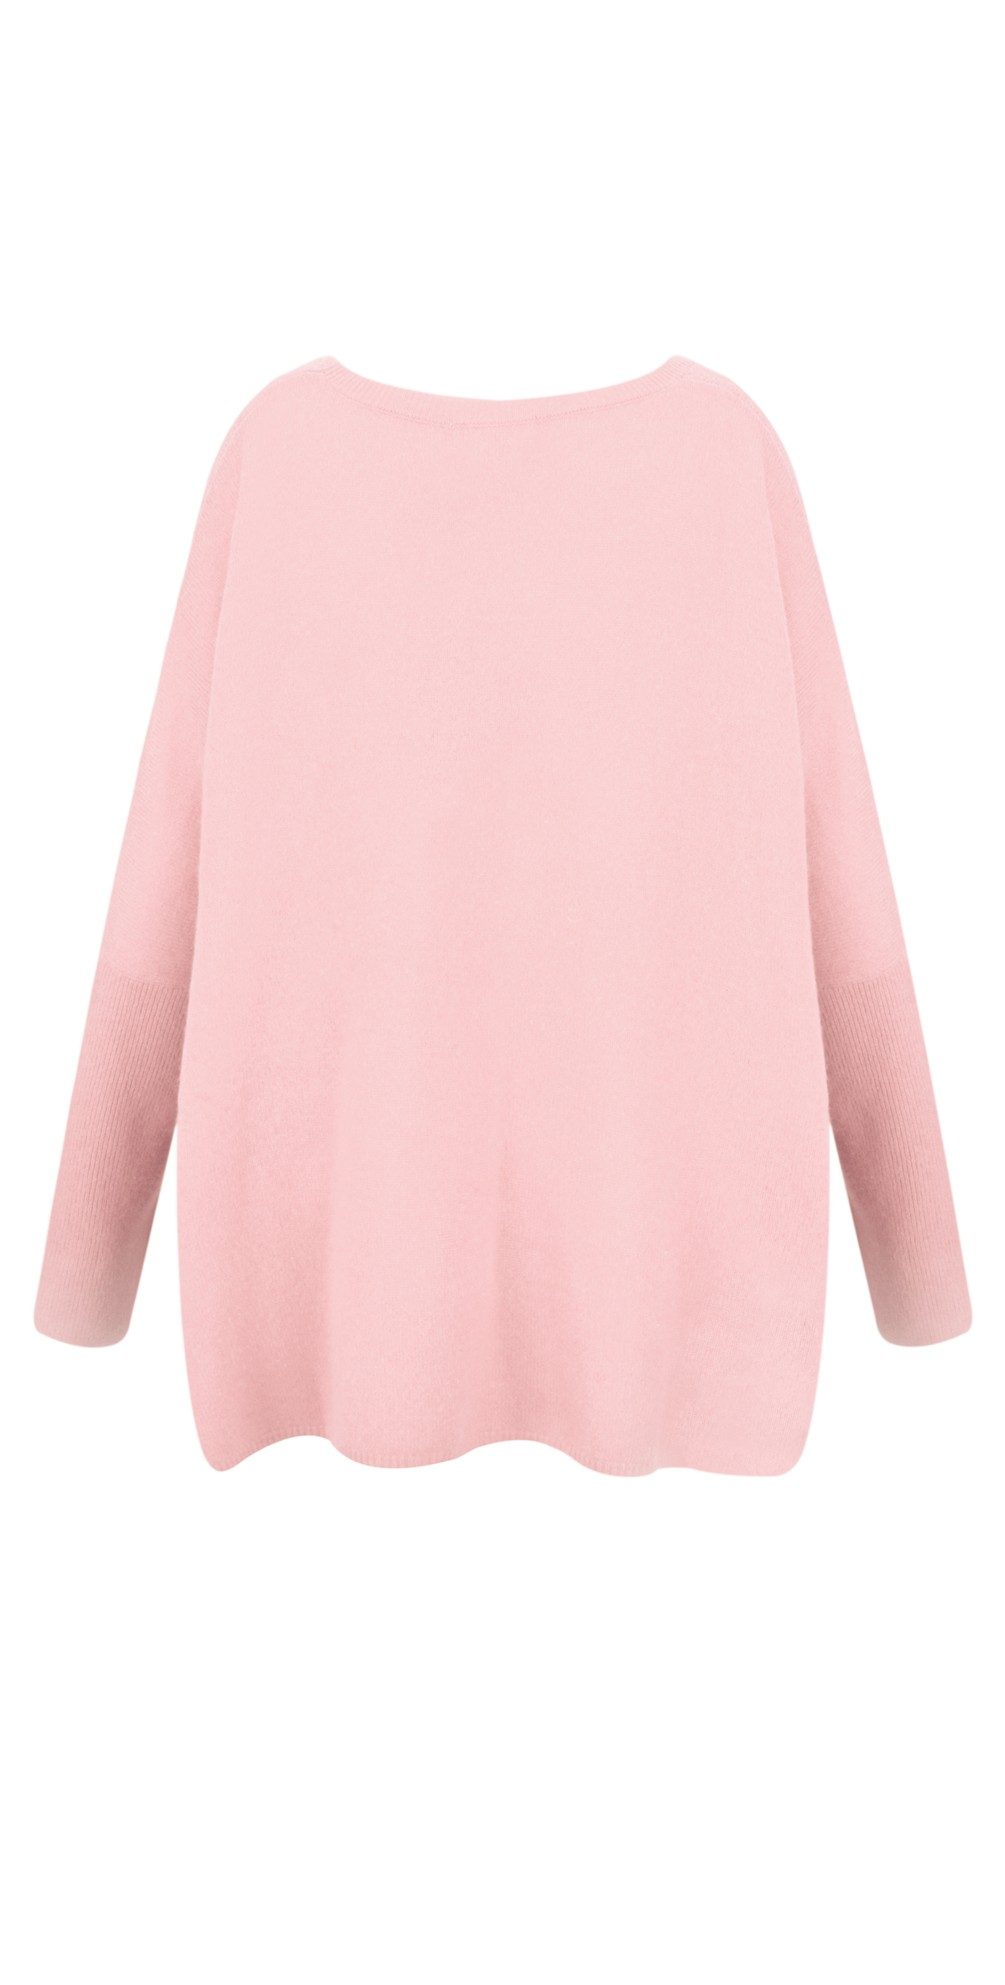 Astrid Round Neck Poncho Cashmere Jumper main image